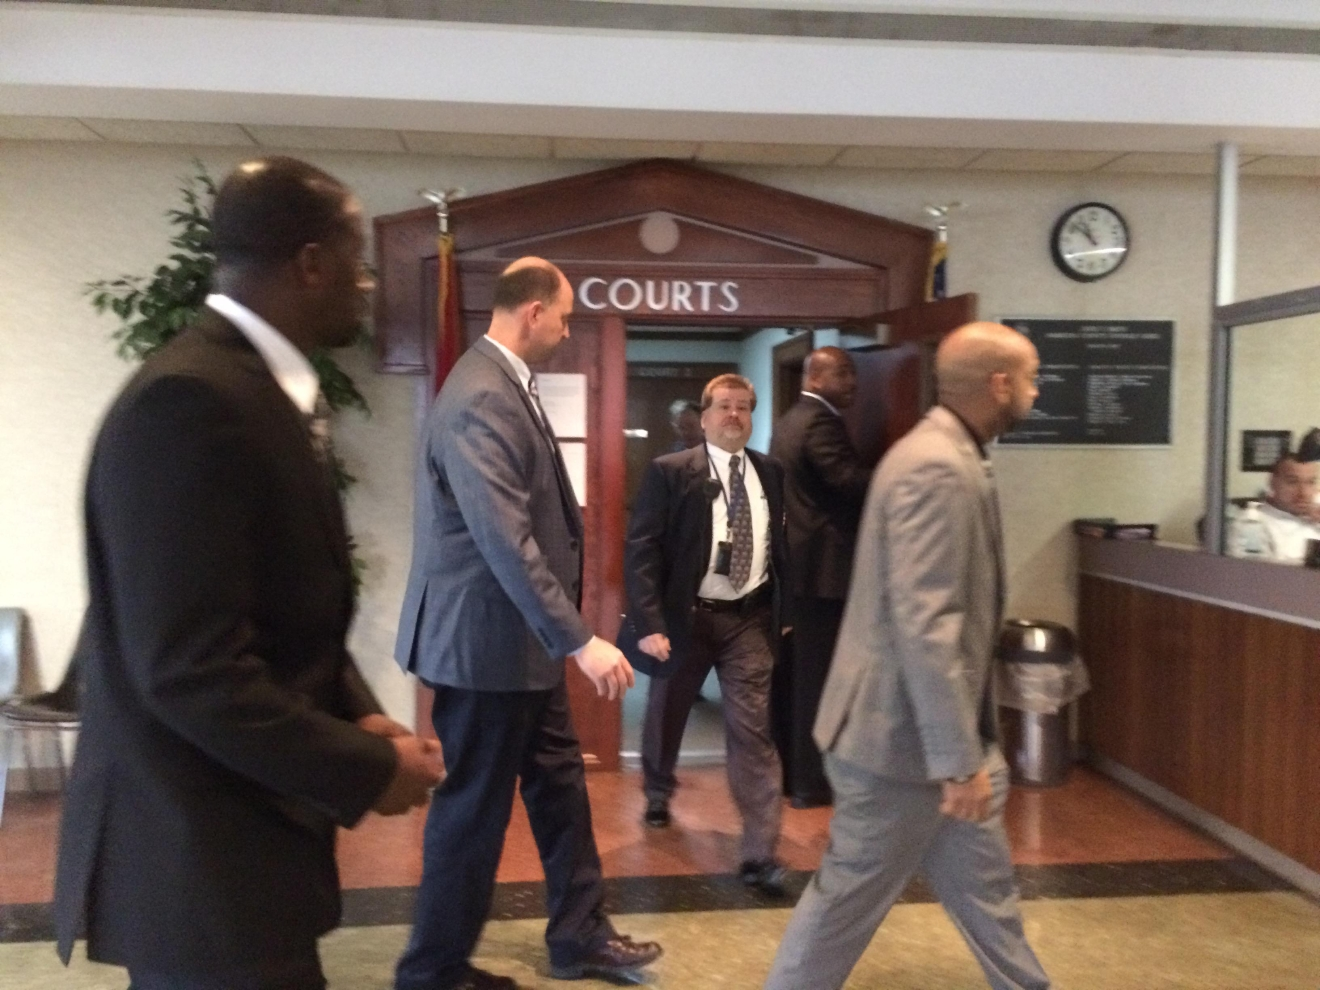 Ooltewah High School assistant basketball coach Karl Williams (left), Athletic Director Jesse Nayadley (center) and head coach Andre Montgomery (right) leave court after their preliminary hearing on February 15th.